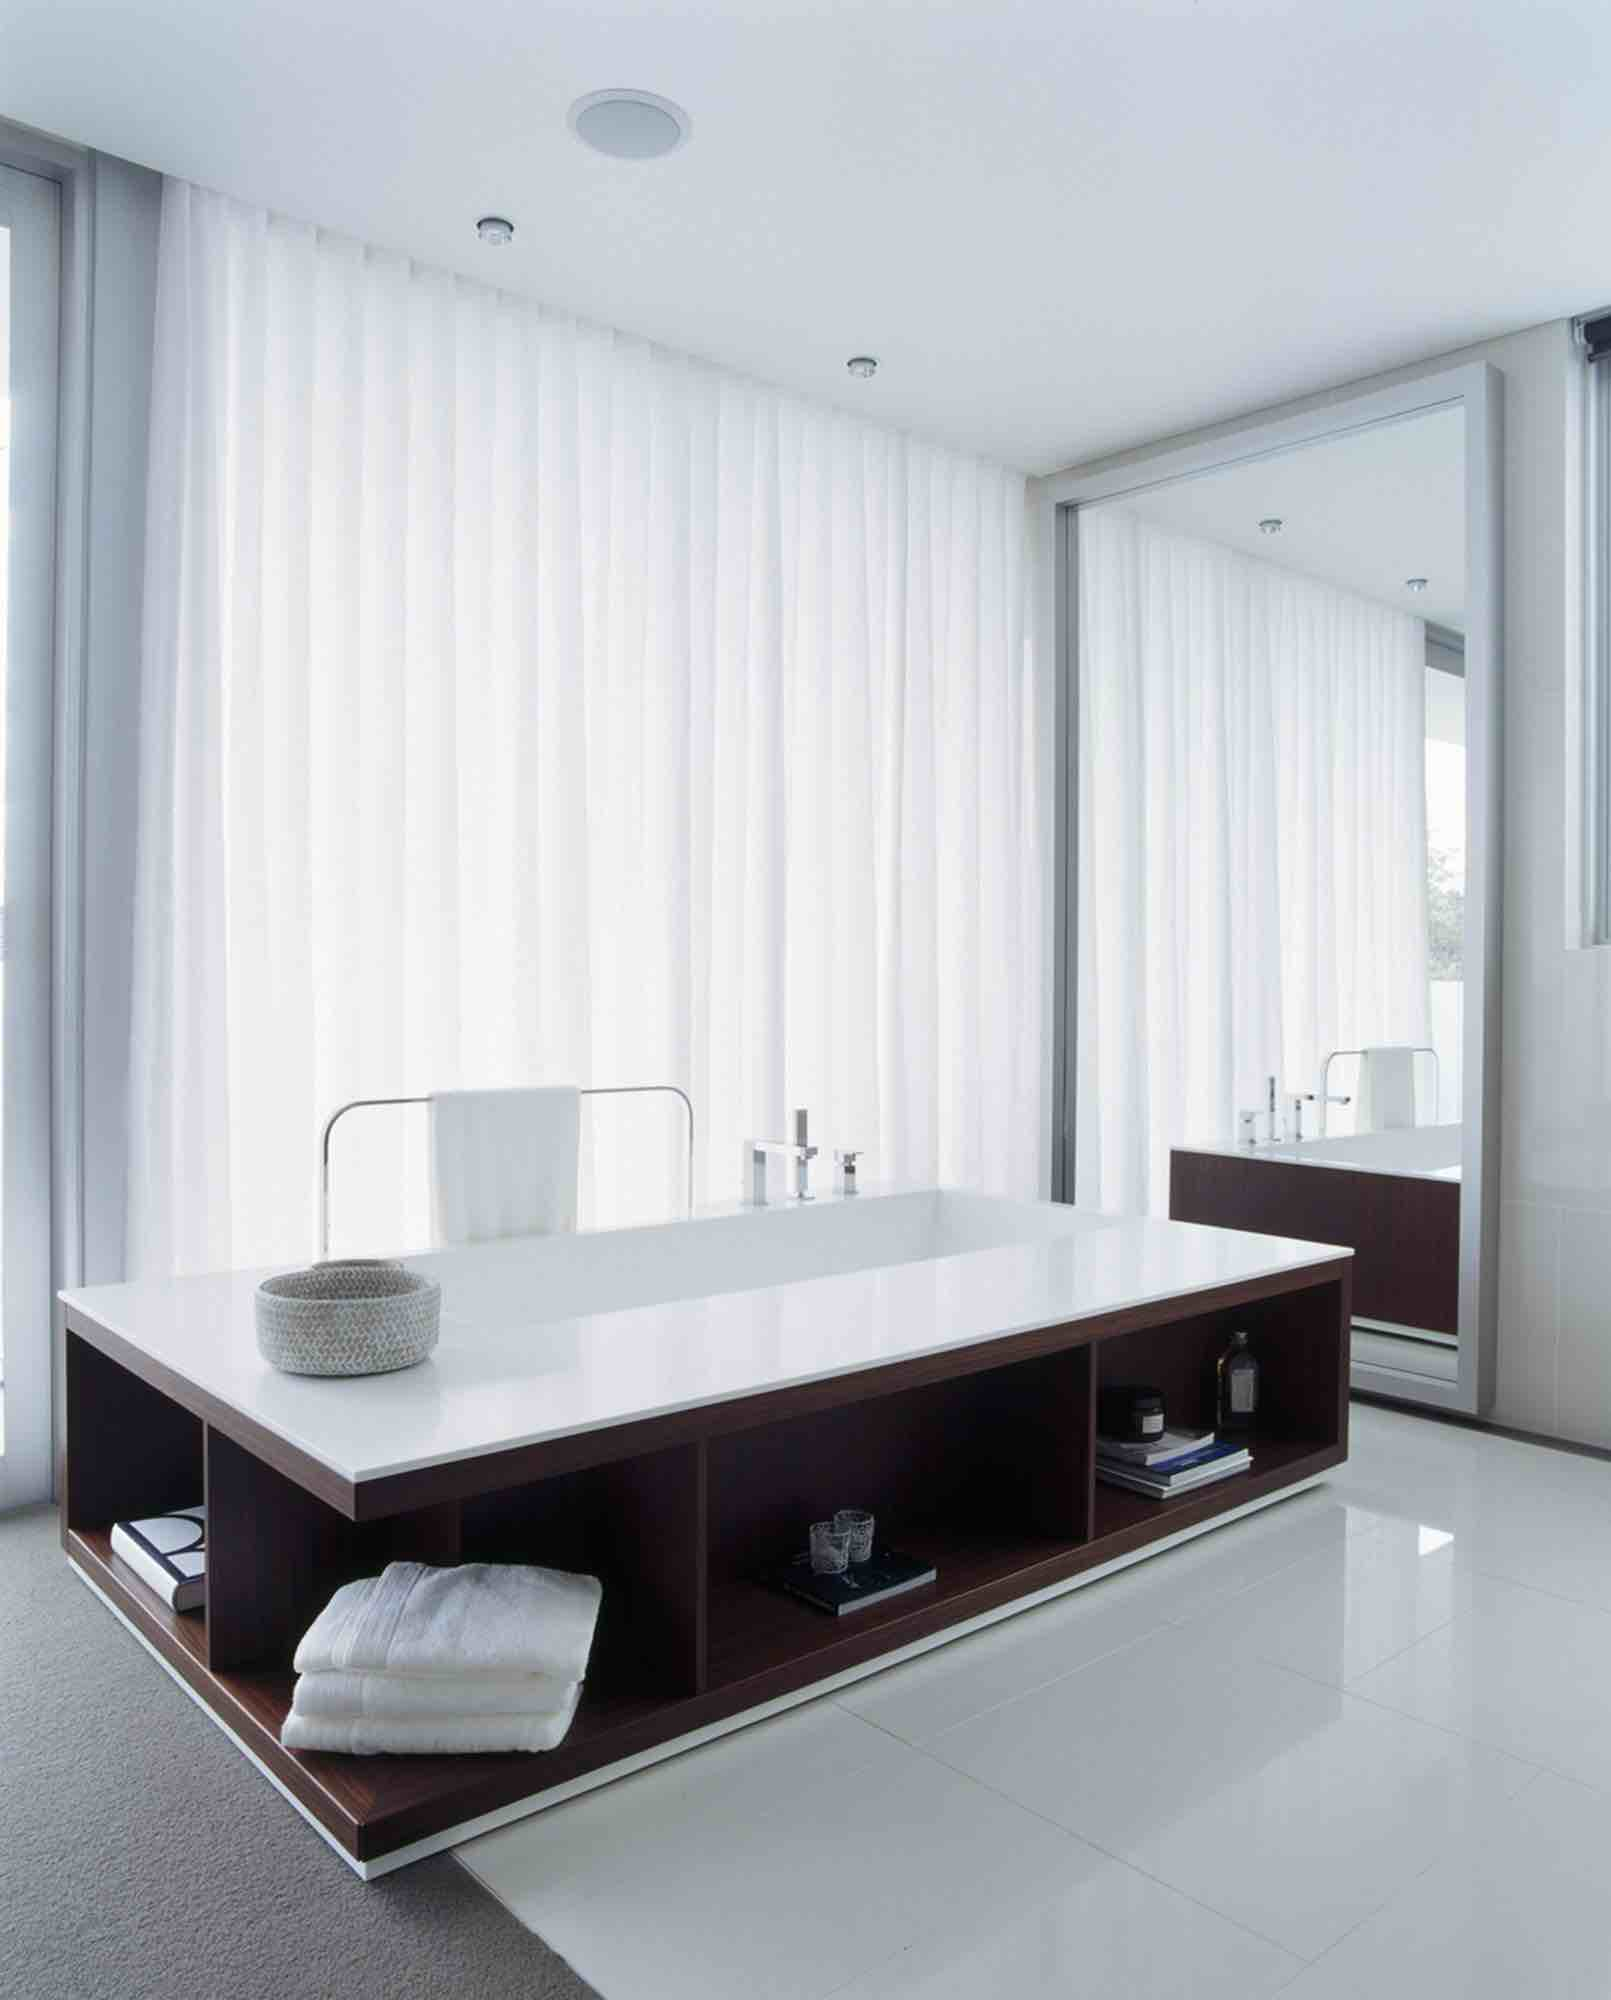 minosa-design-open-plan-ensuite-parents-retreat-dover-heights-portland-st-scooped-double-rifra-freestanding-corian-bath-shear-curtain-bathroom-02